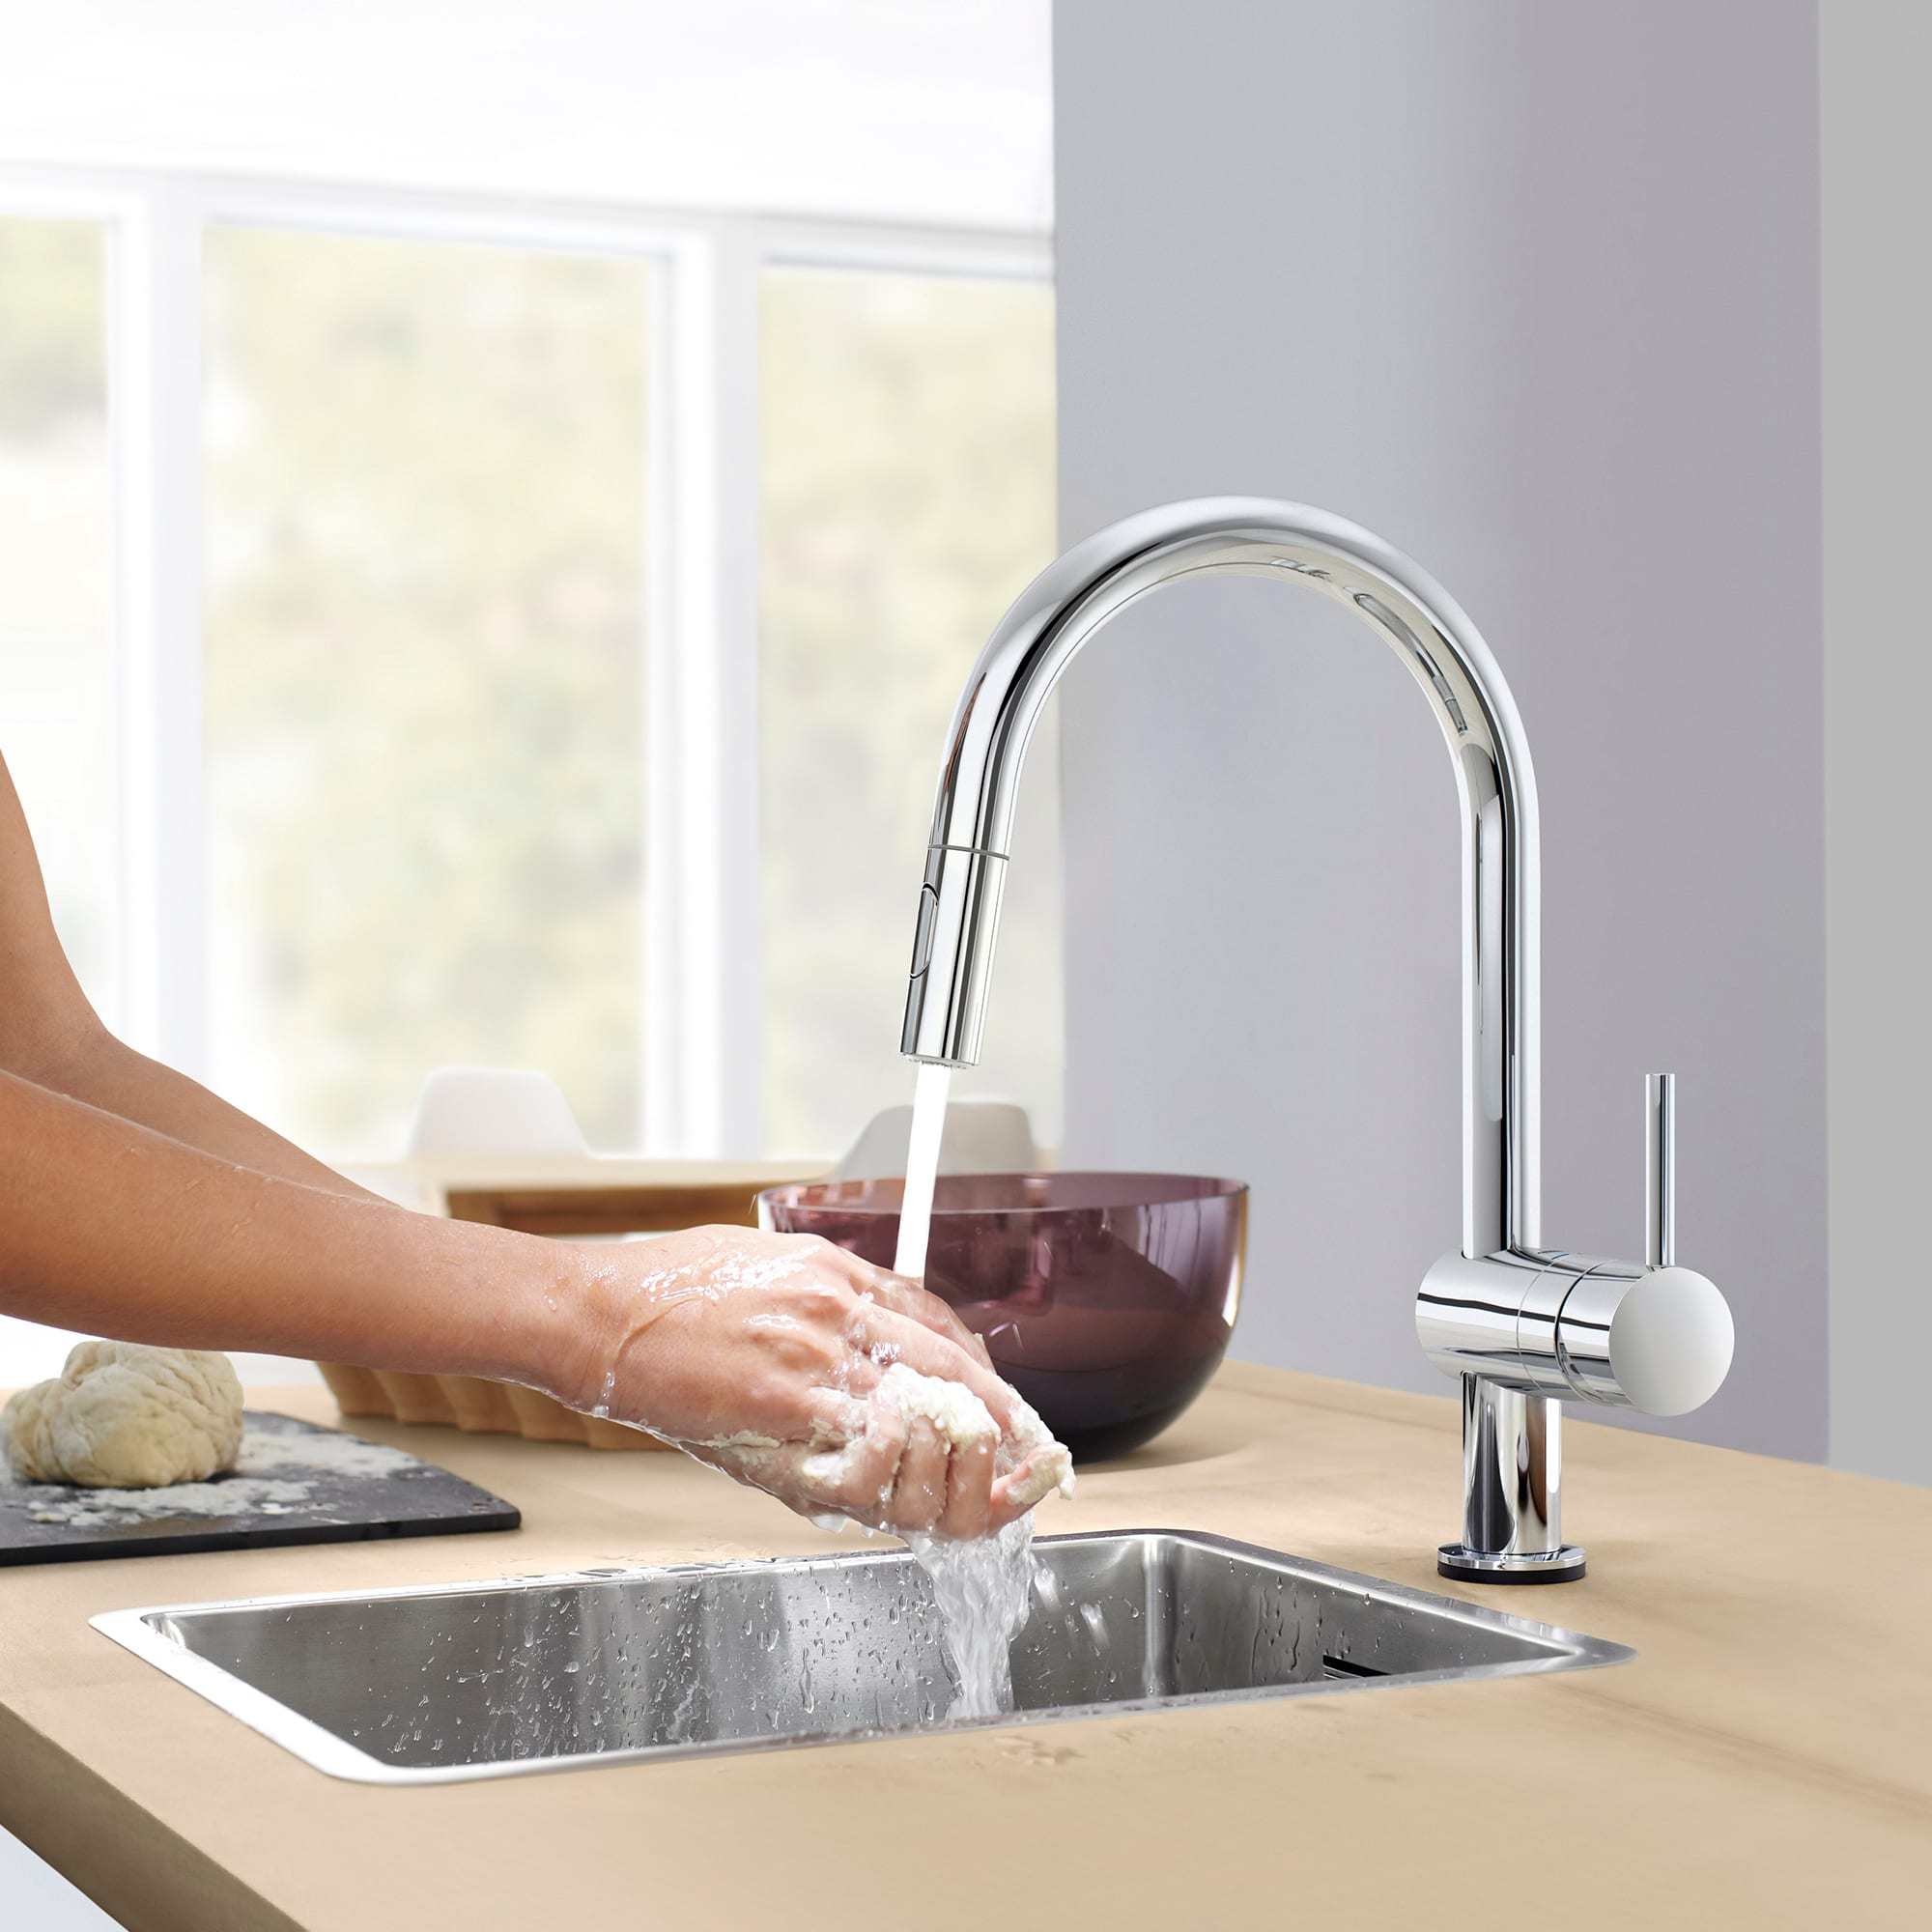 Grohe 31359dc2 Supersteel Minta 1 75 Gpm Single Hole Pull Down Kitchen Faucet With On Off Touch Activation Faucetdirect Com